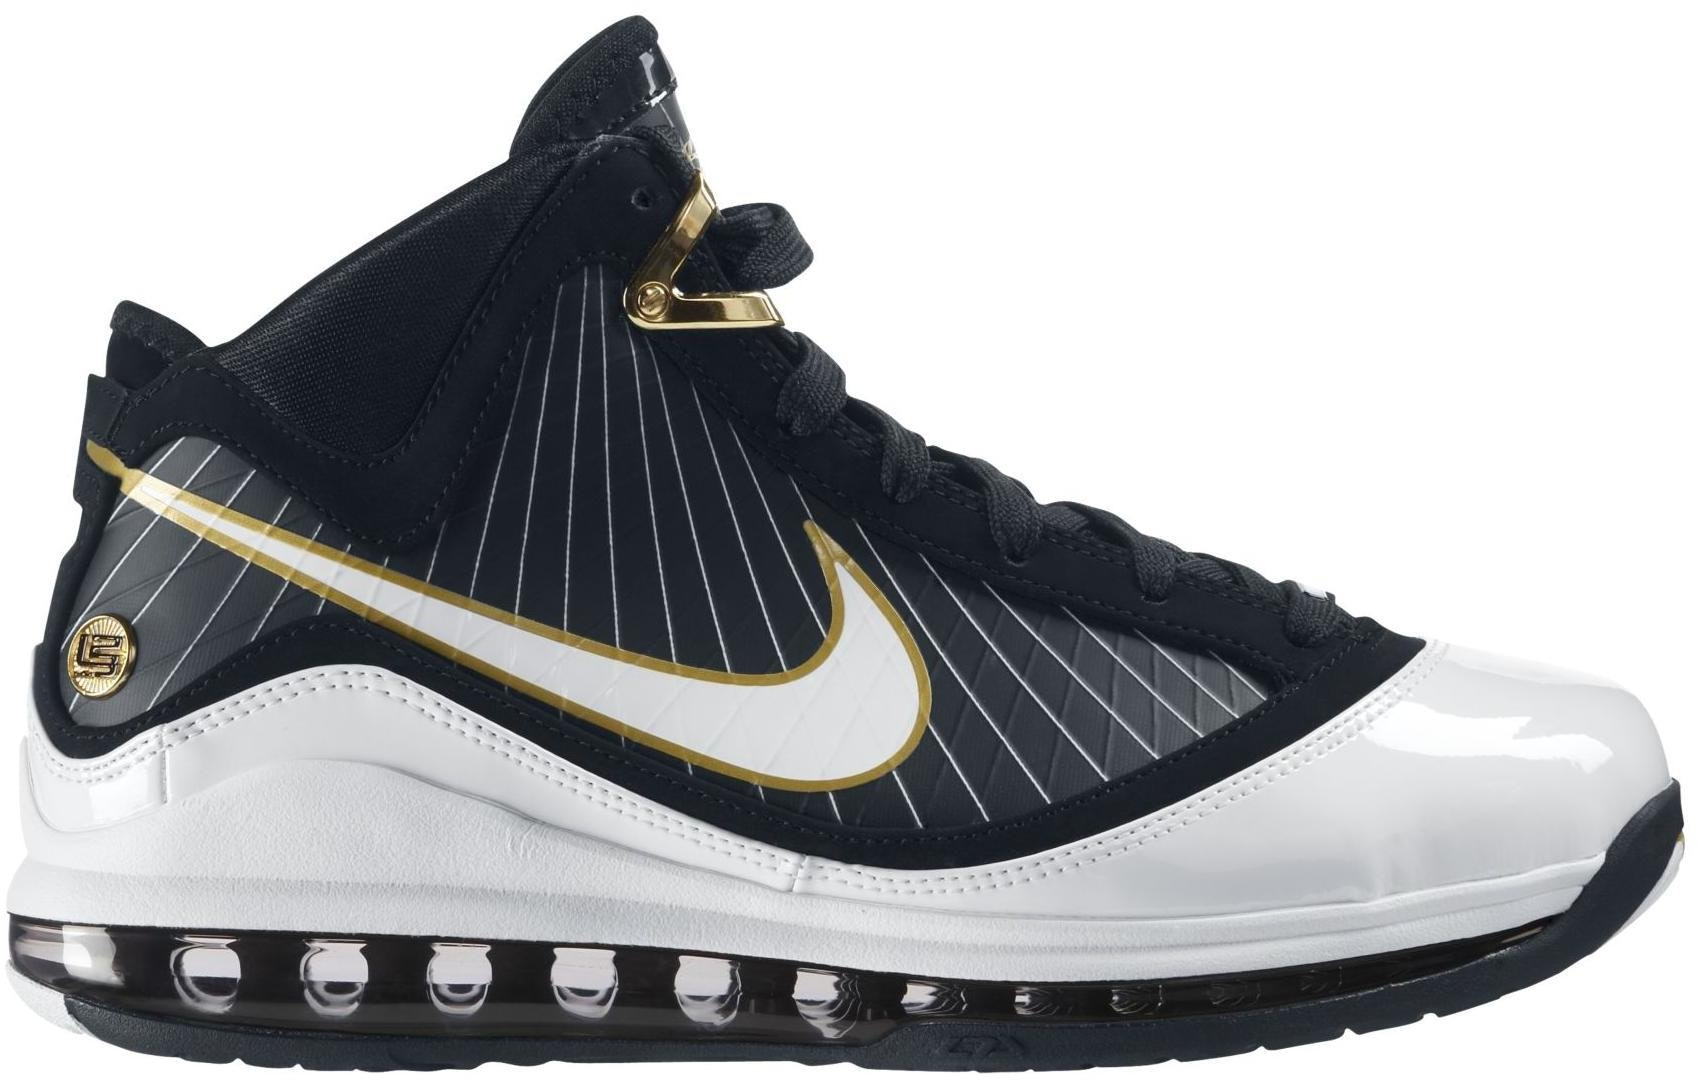 LeBron 7 Black/White-Metallic Gold